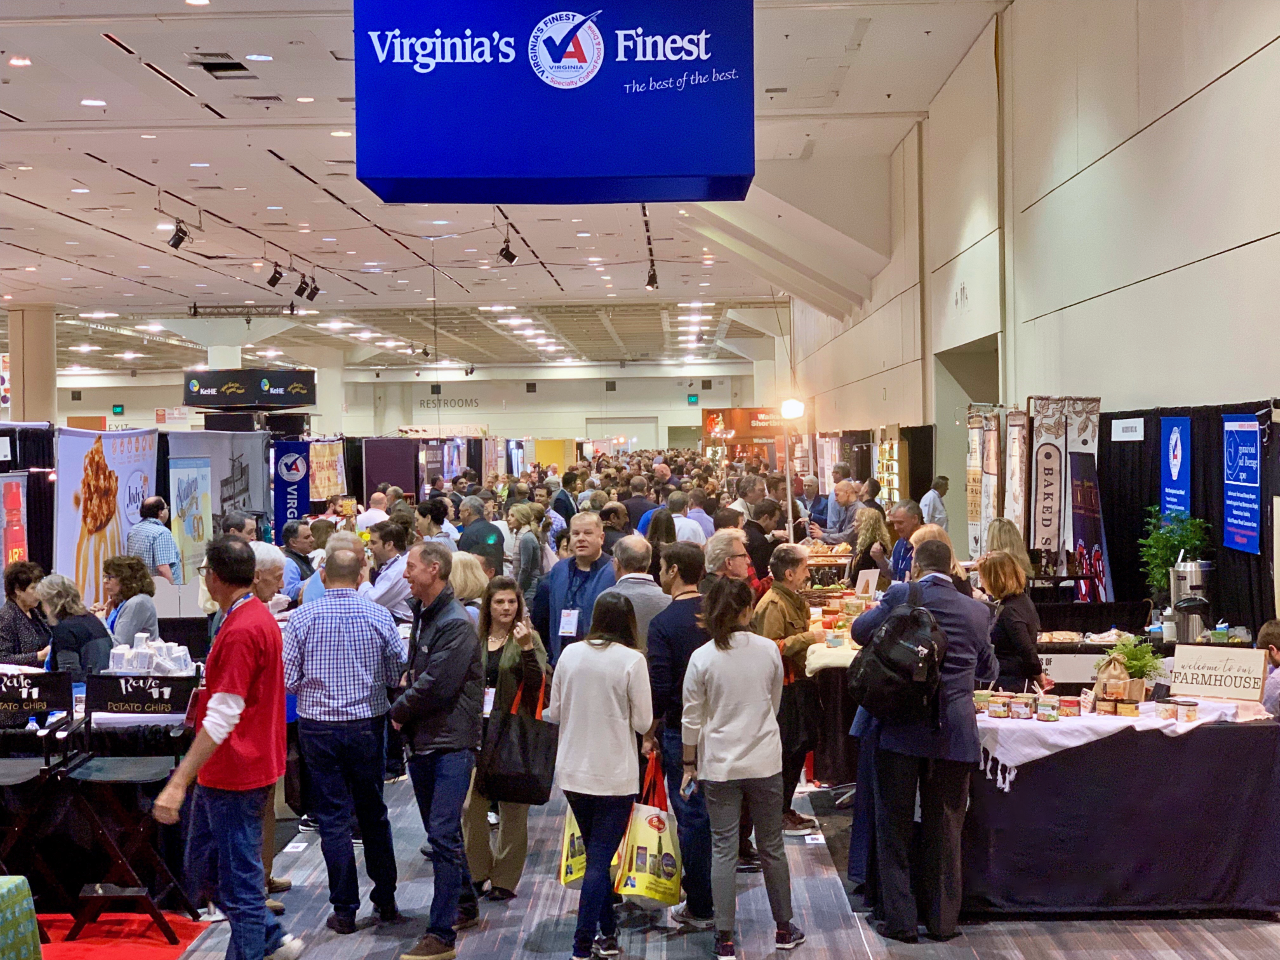 About - Discover all that the 2020 Virginia Food and Beverage Expo has to offer.